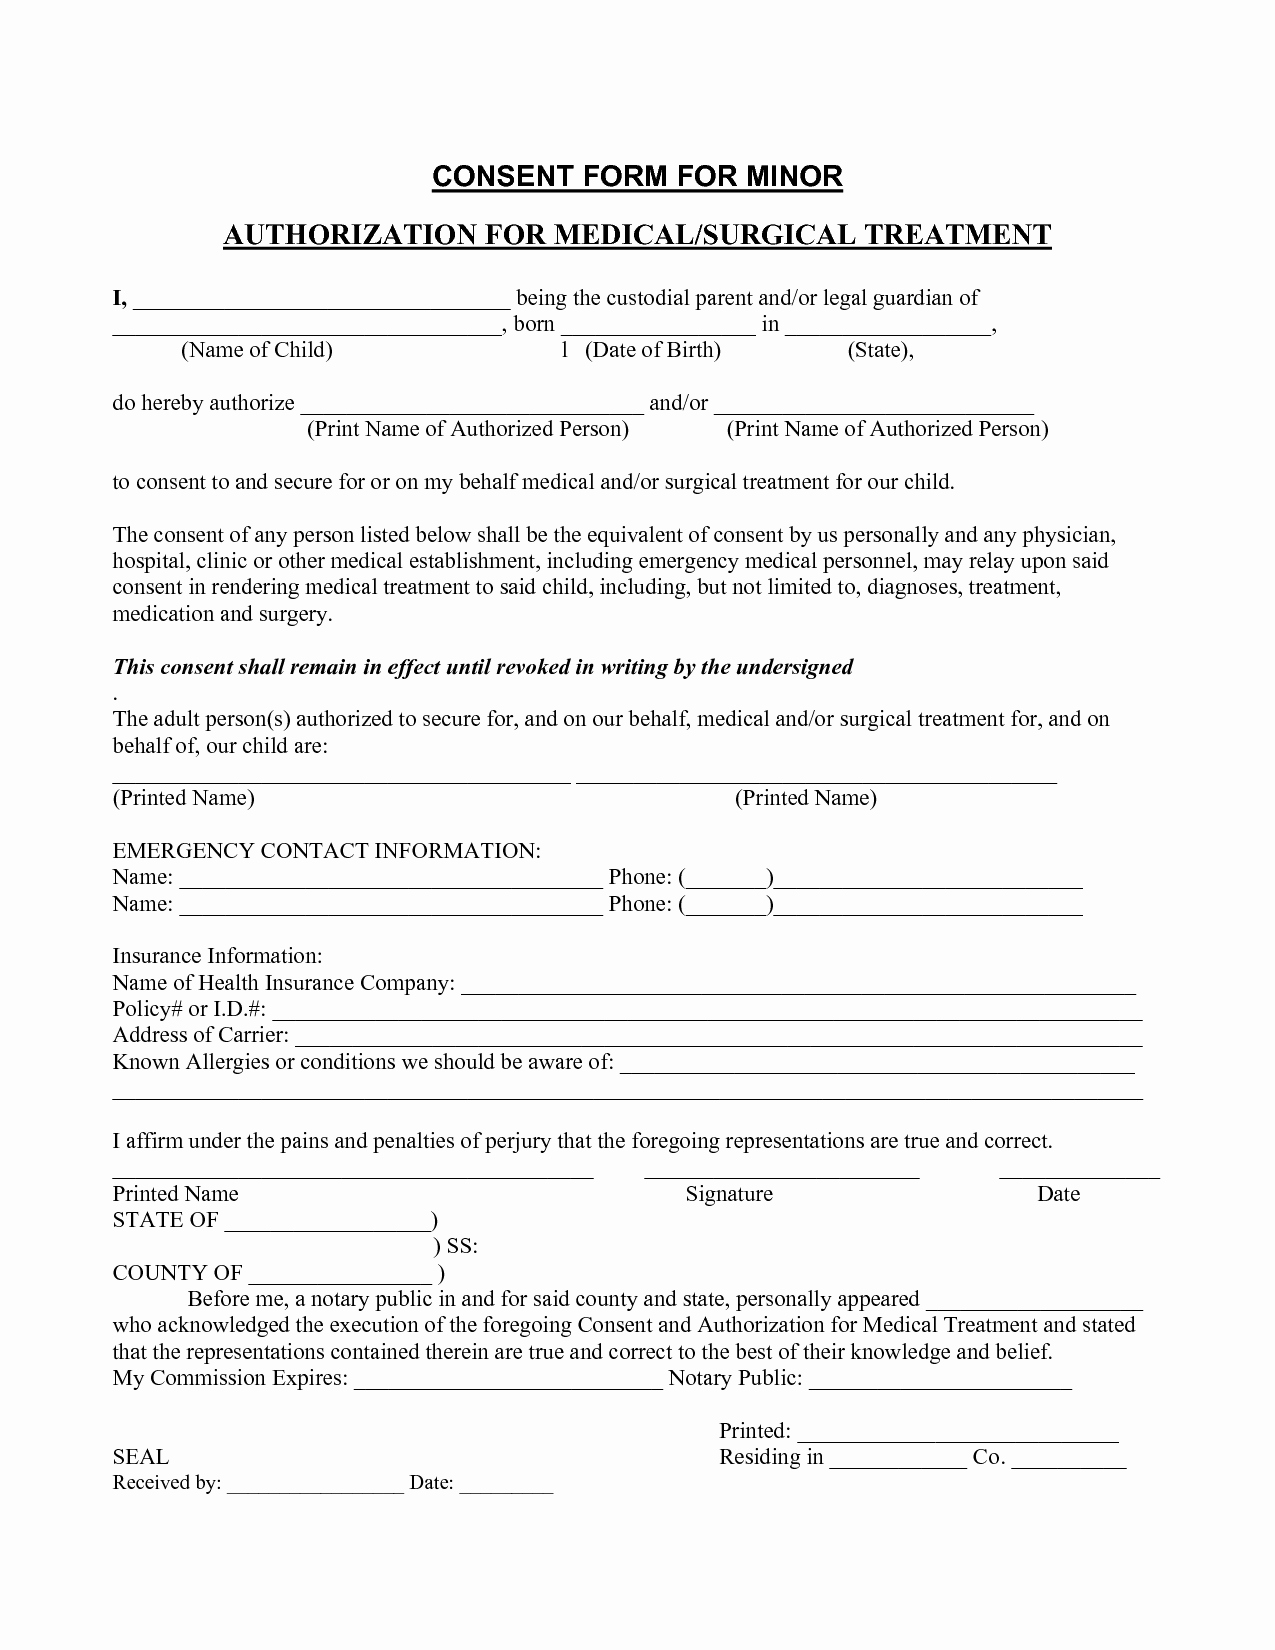 Free Printable Medical forms Lovely Medical Consent form Template